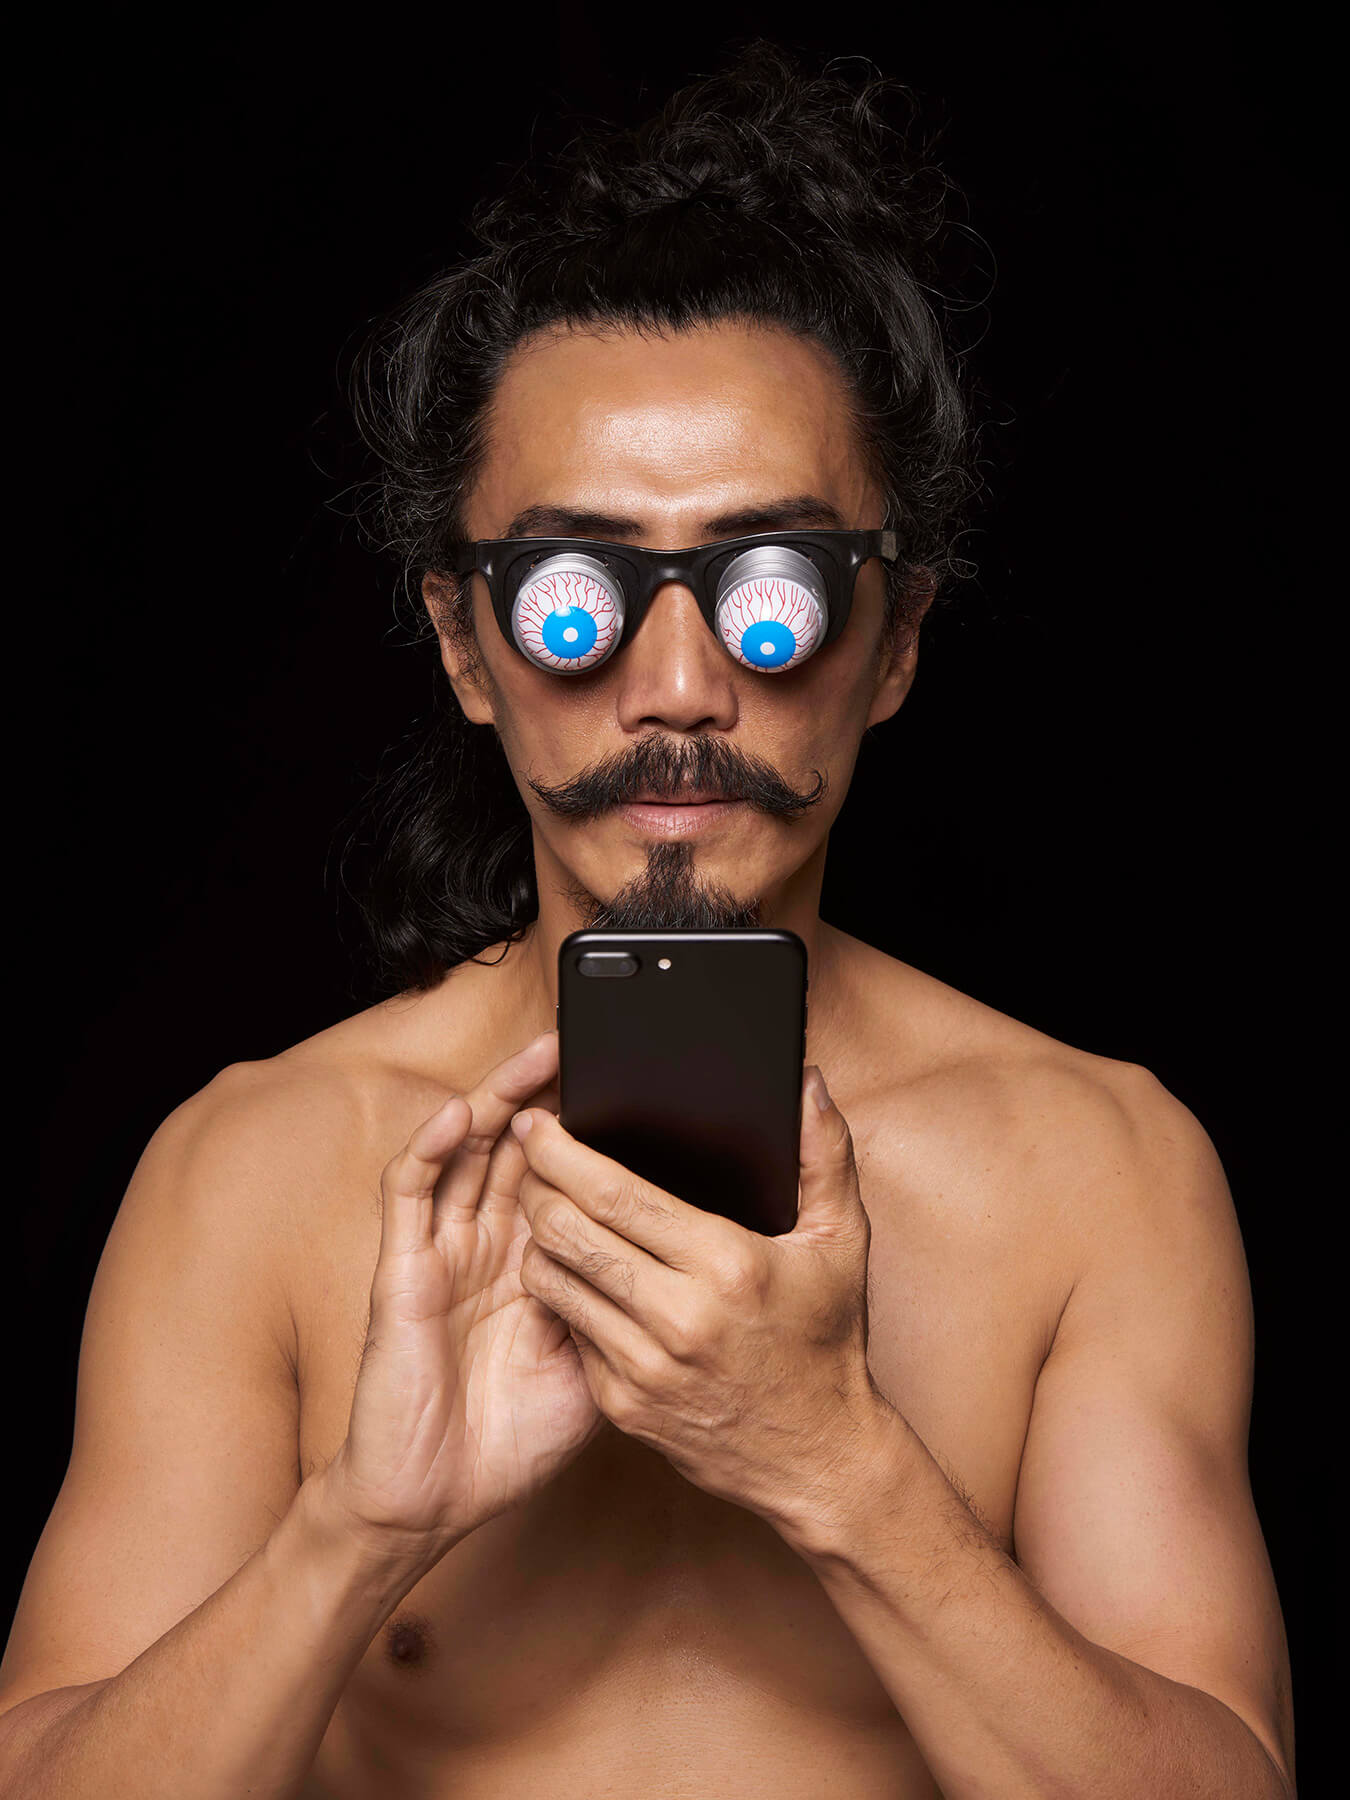 22 Oct 2017 Derong is wearing a pair of 'eye-popping' glasses and looking into a smartphone screen